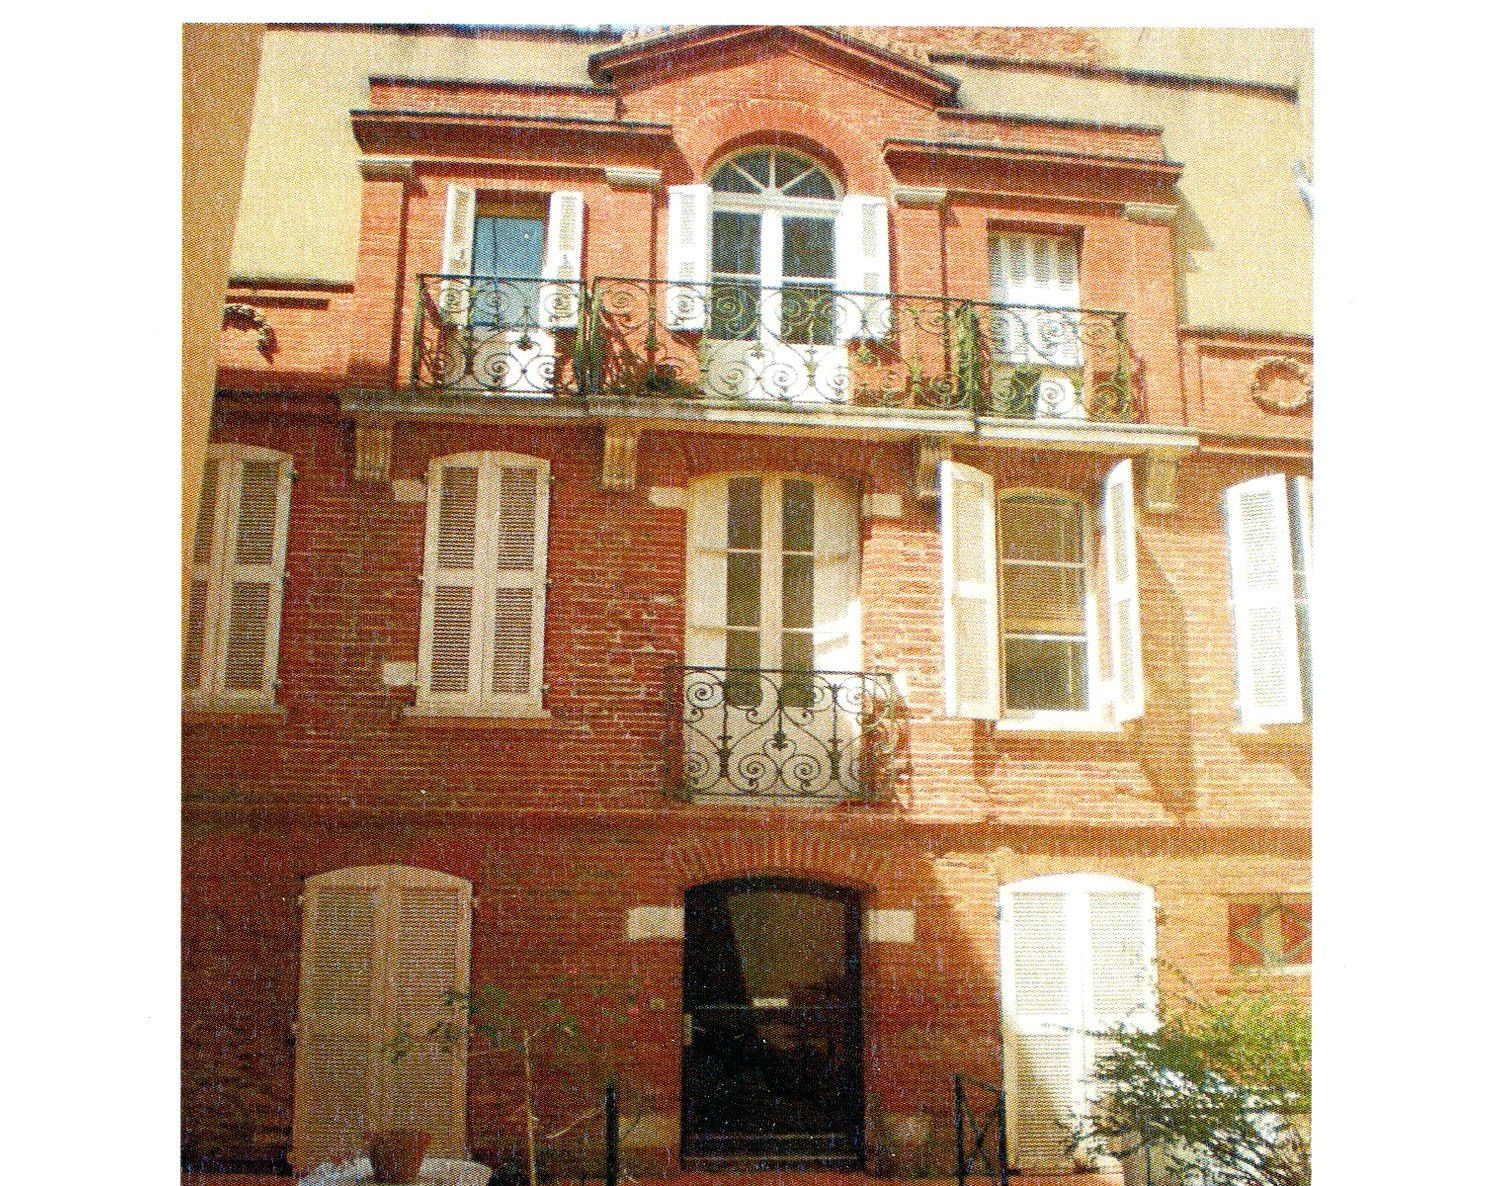 Location appart hotel toulouse centre capitole 31 for Appart hotel 31